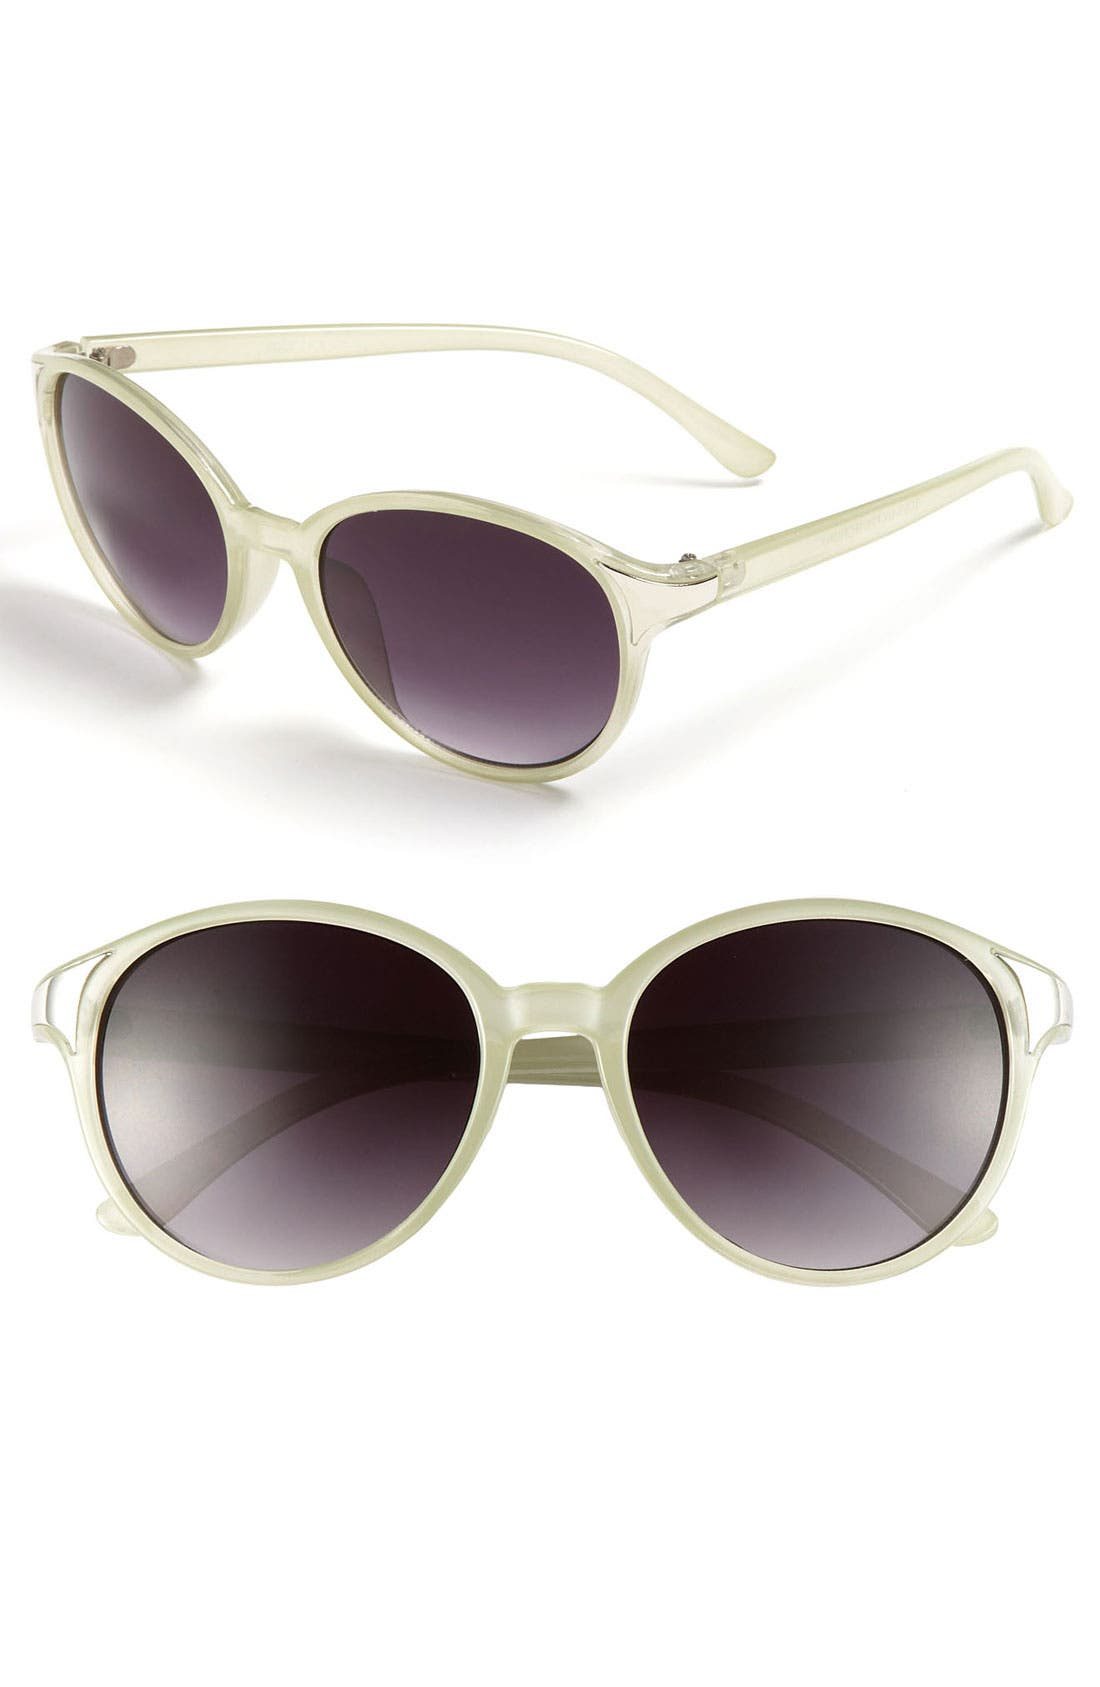 Alternate Image 1 Selected - FE NY 'High Life' Sunglasses